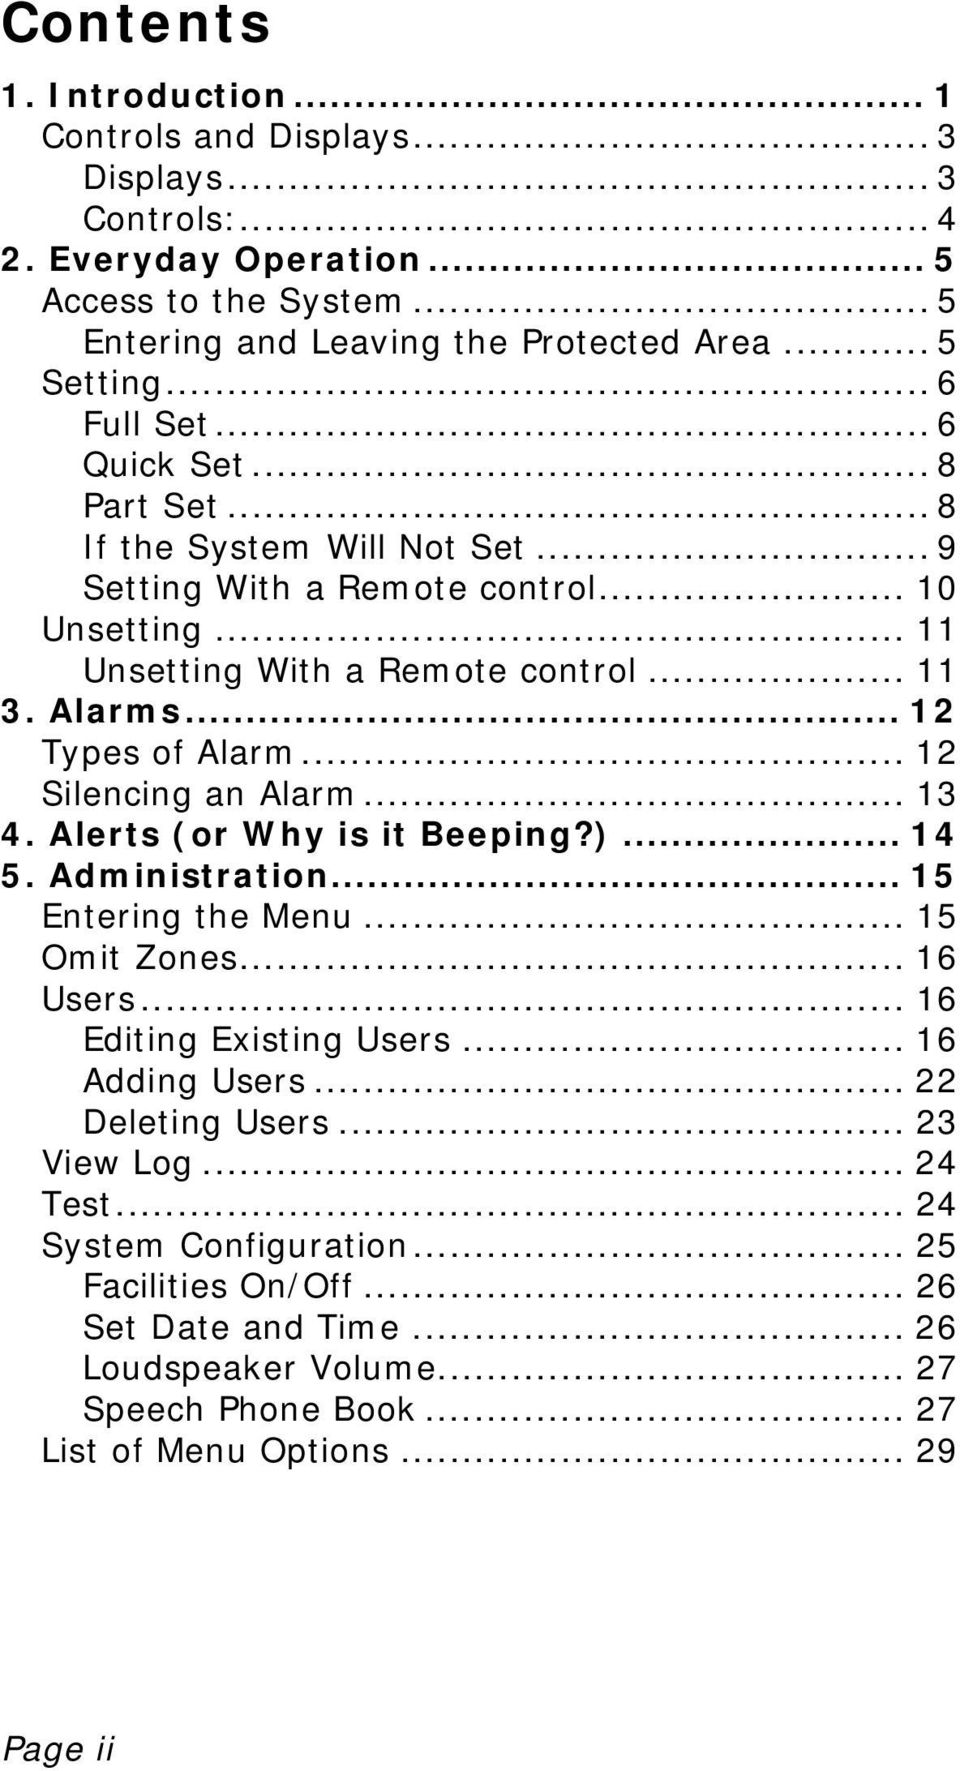 .. 12 Silencing an Alarm... 13 4. Alerts (or Why is it Beeping?)... 14 5. Administration... 15 Entering the Menu... 15 Omit Zones... 16 Users... 16 Editing Existing Users... 16 Adding Users.